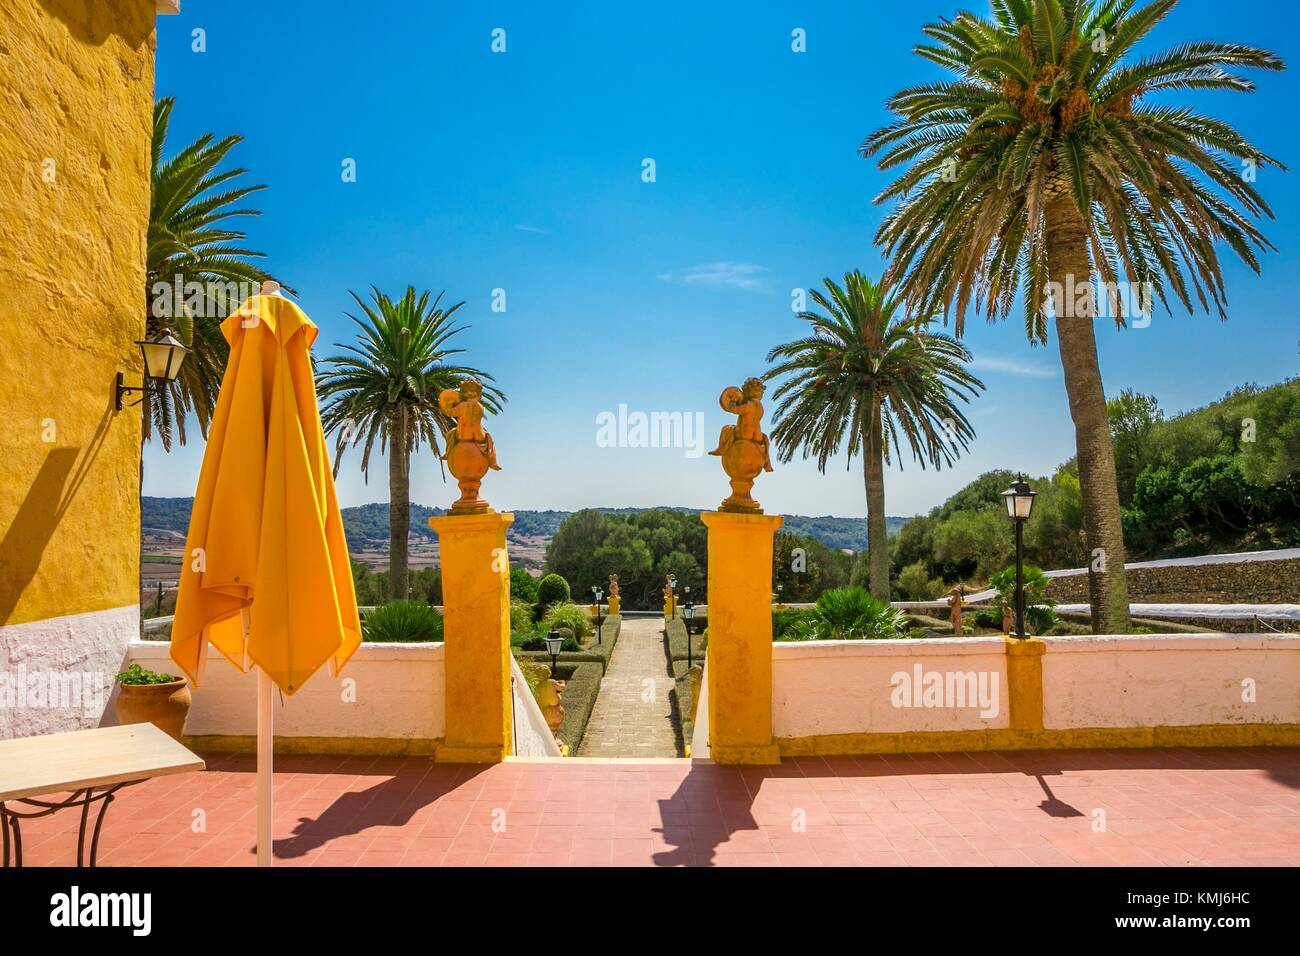 Binissues manor houses of the eighteenth century is where the new Museum of Natural Sciences of Menorca is located. - Stock Image